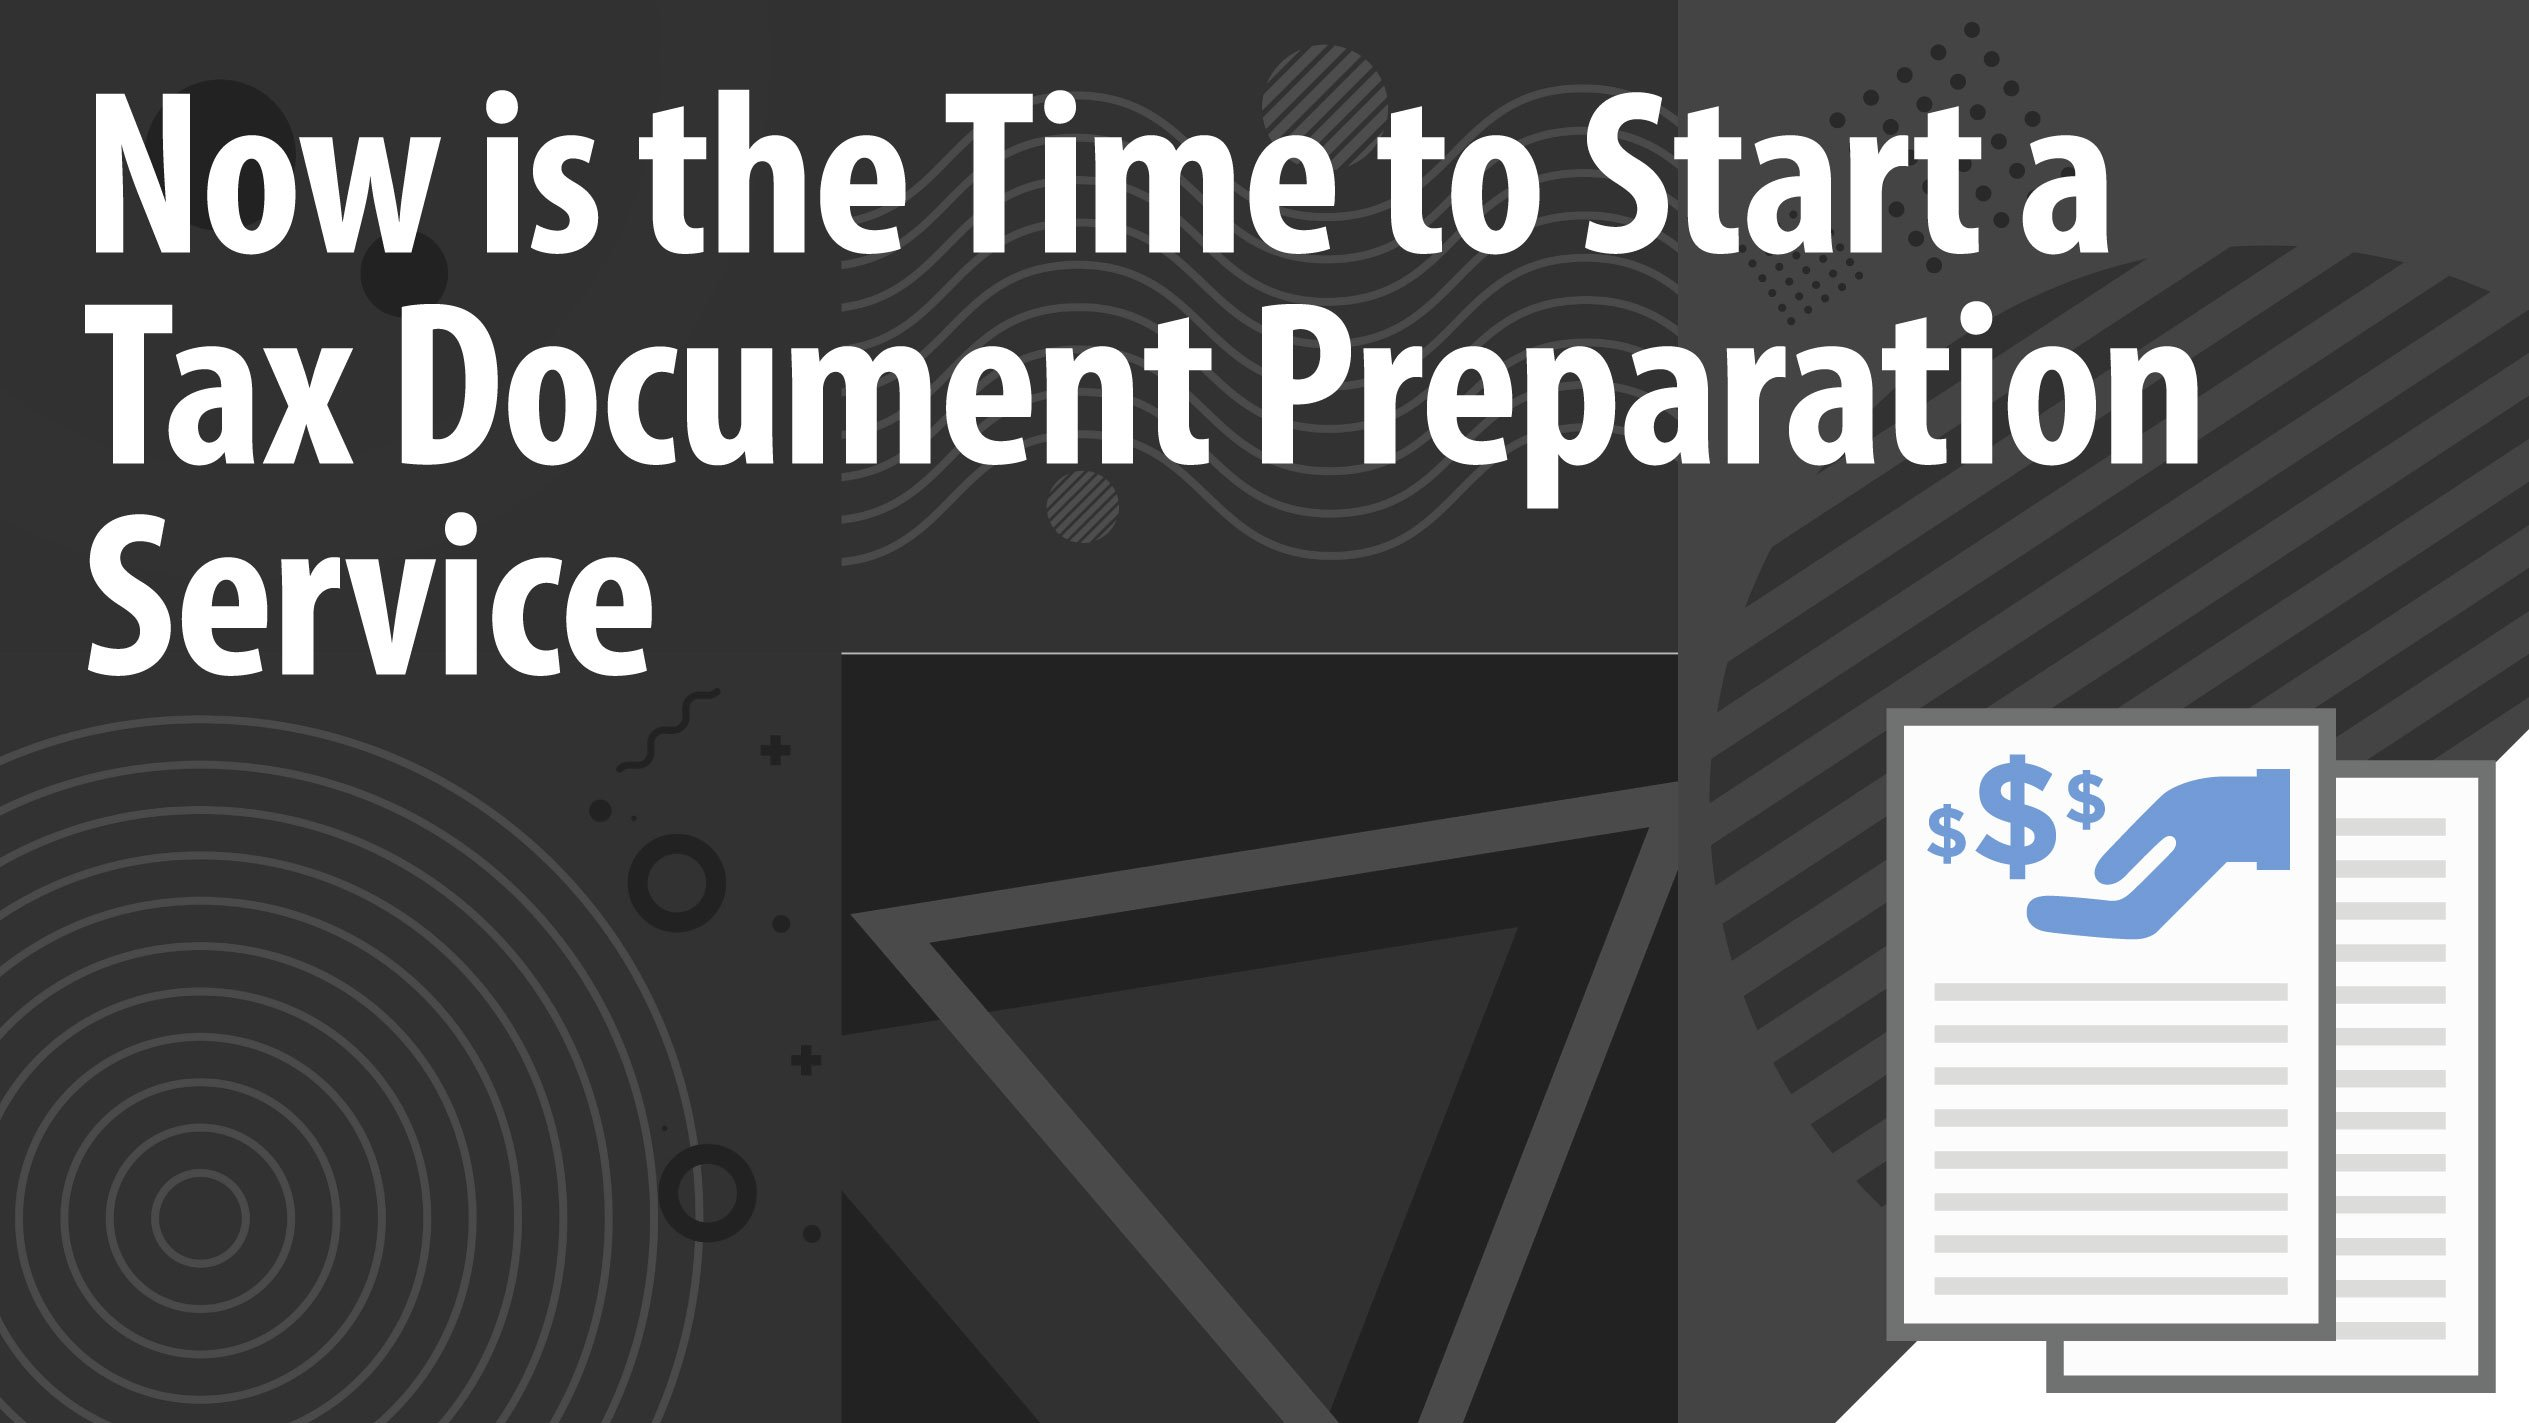 Now is the Time to Start a Tax Document Preparation Service